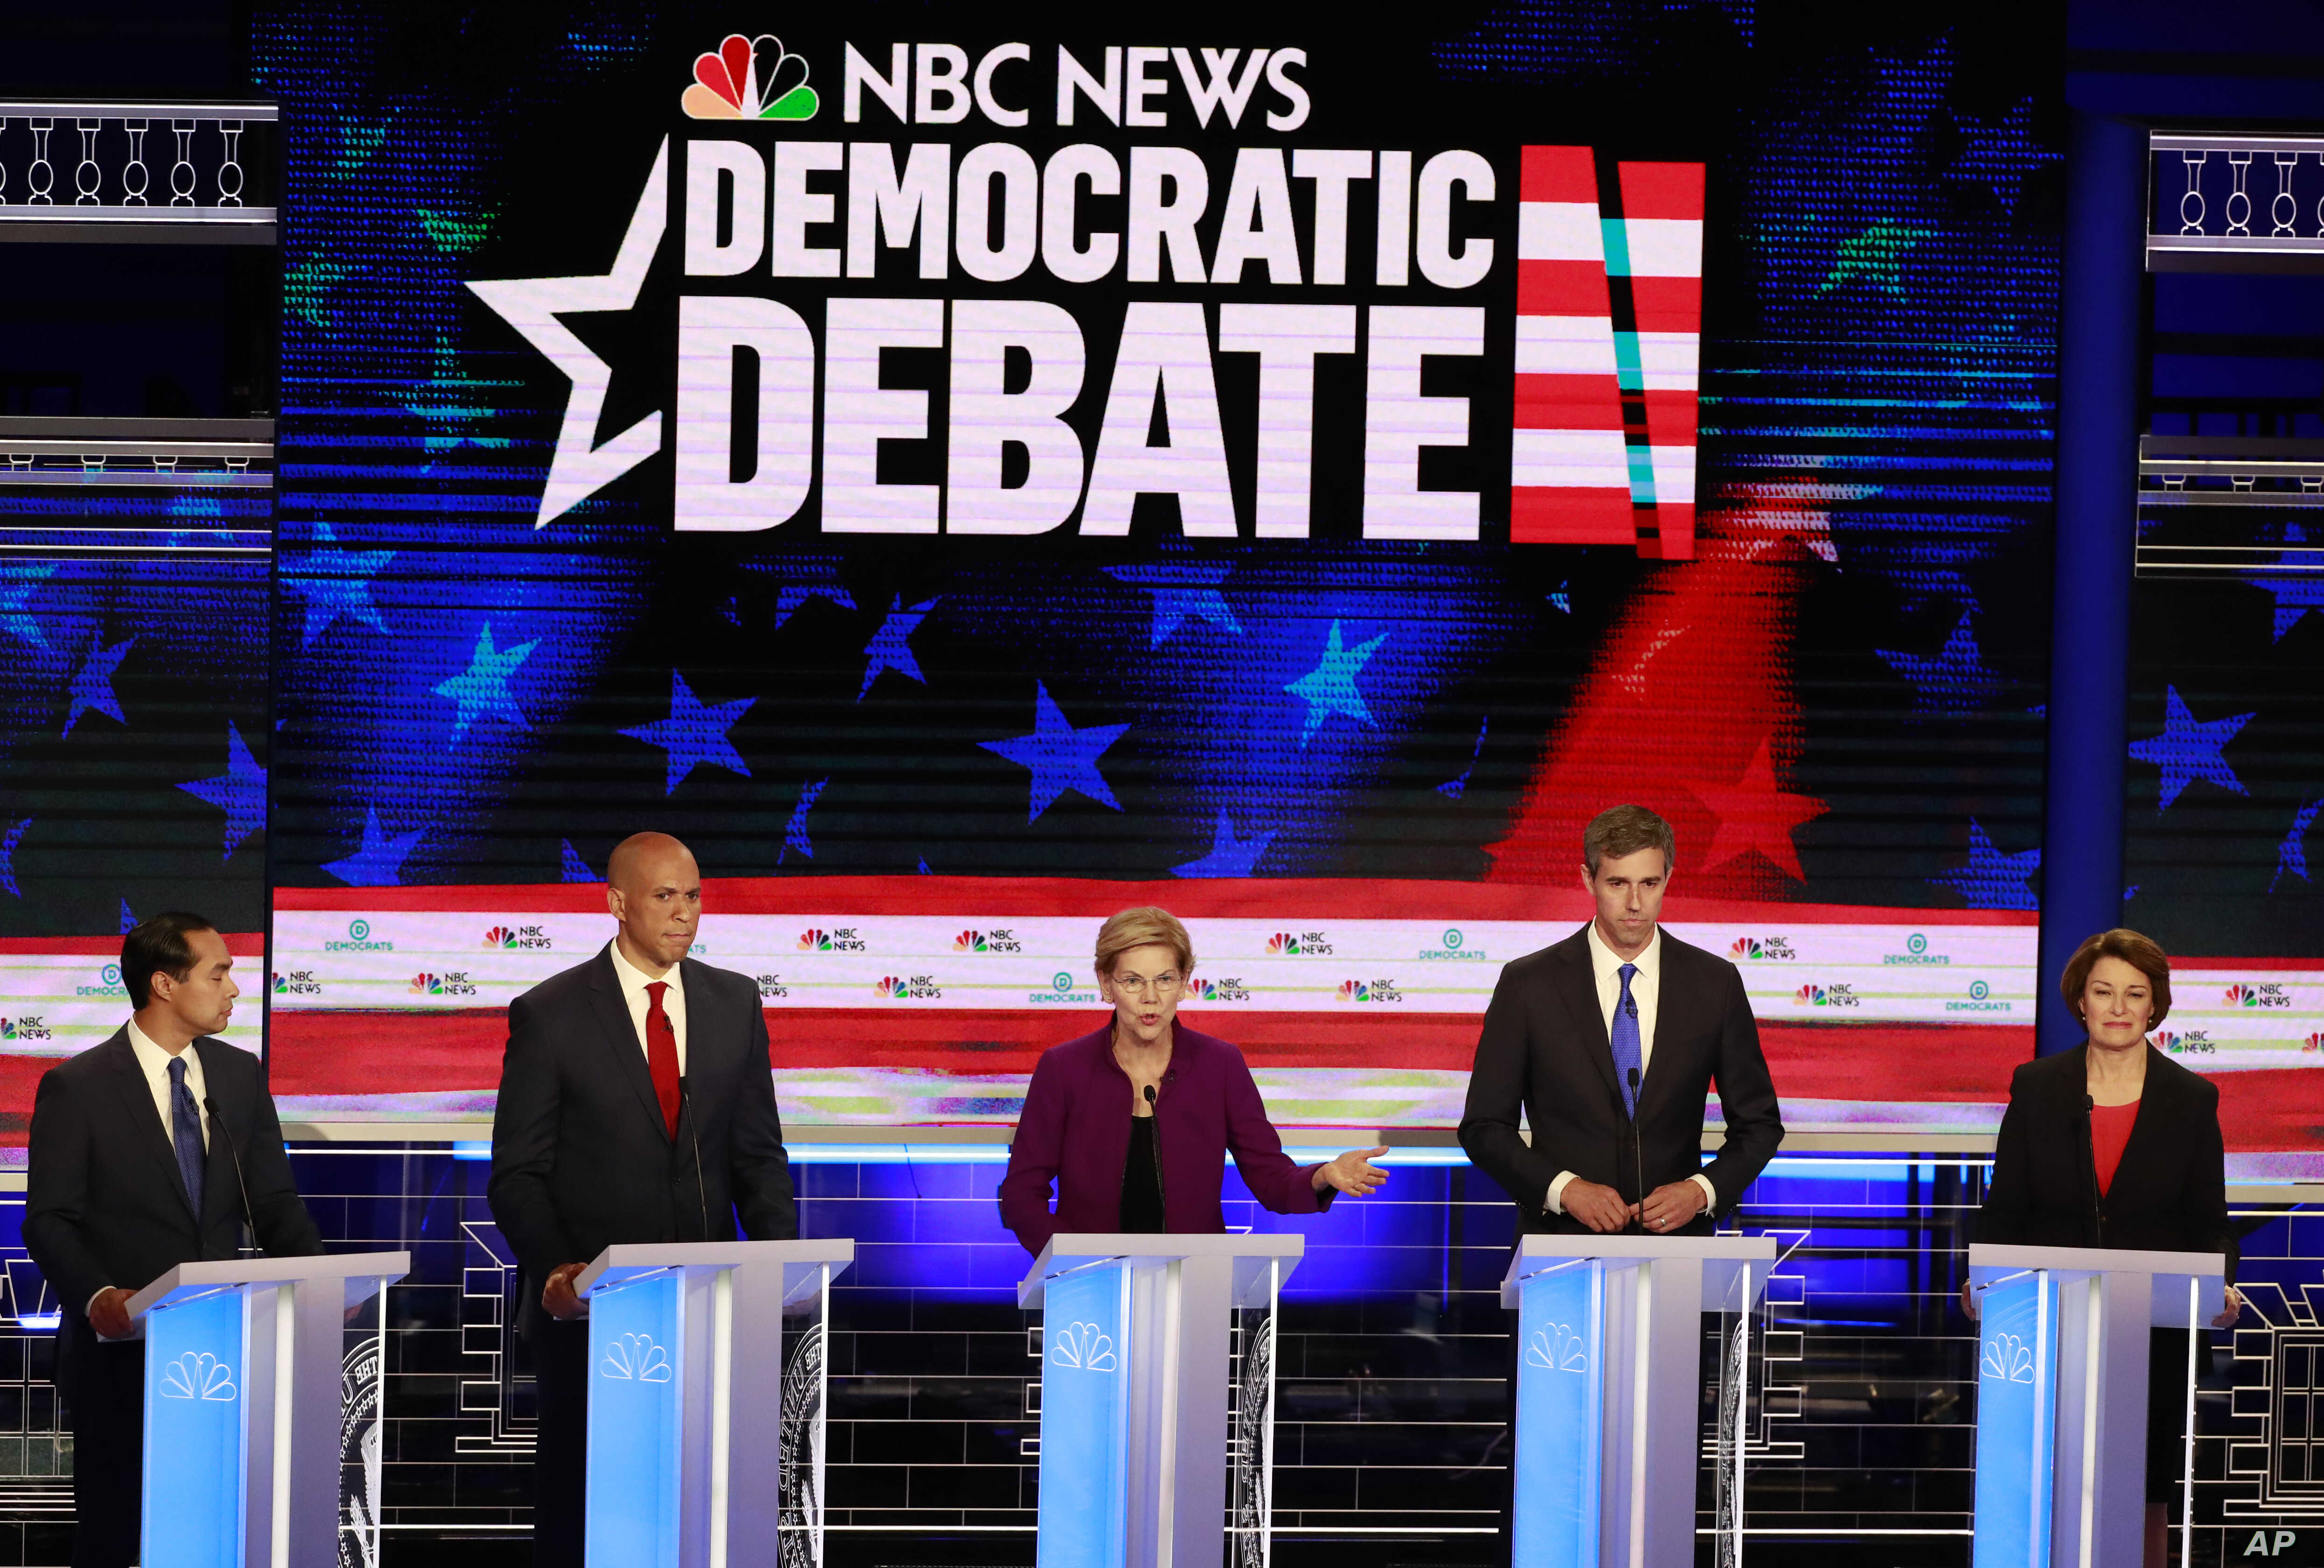 Democratic presidential candidate Sen. Elizabeth Warren, D-Mass., center, speaks during the Democratic primary debate hosted by NBC News at the Adrienne Arsht Center for the Performing Art, Wednesday, June 26, 2019, in Miami.